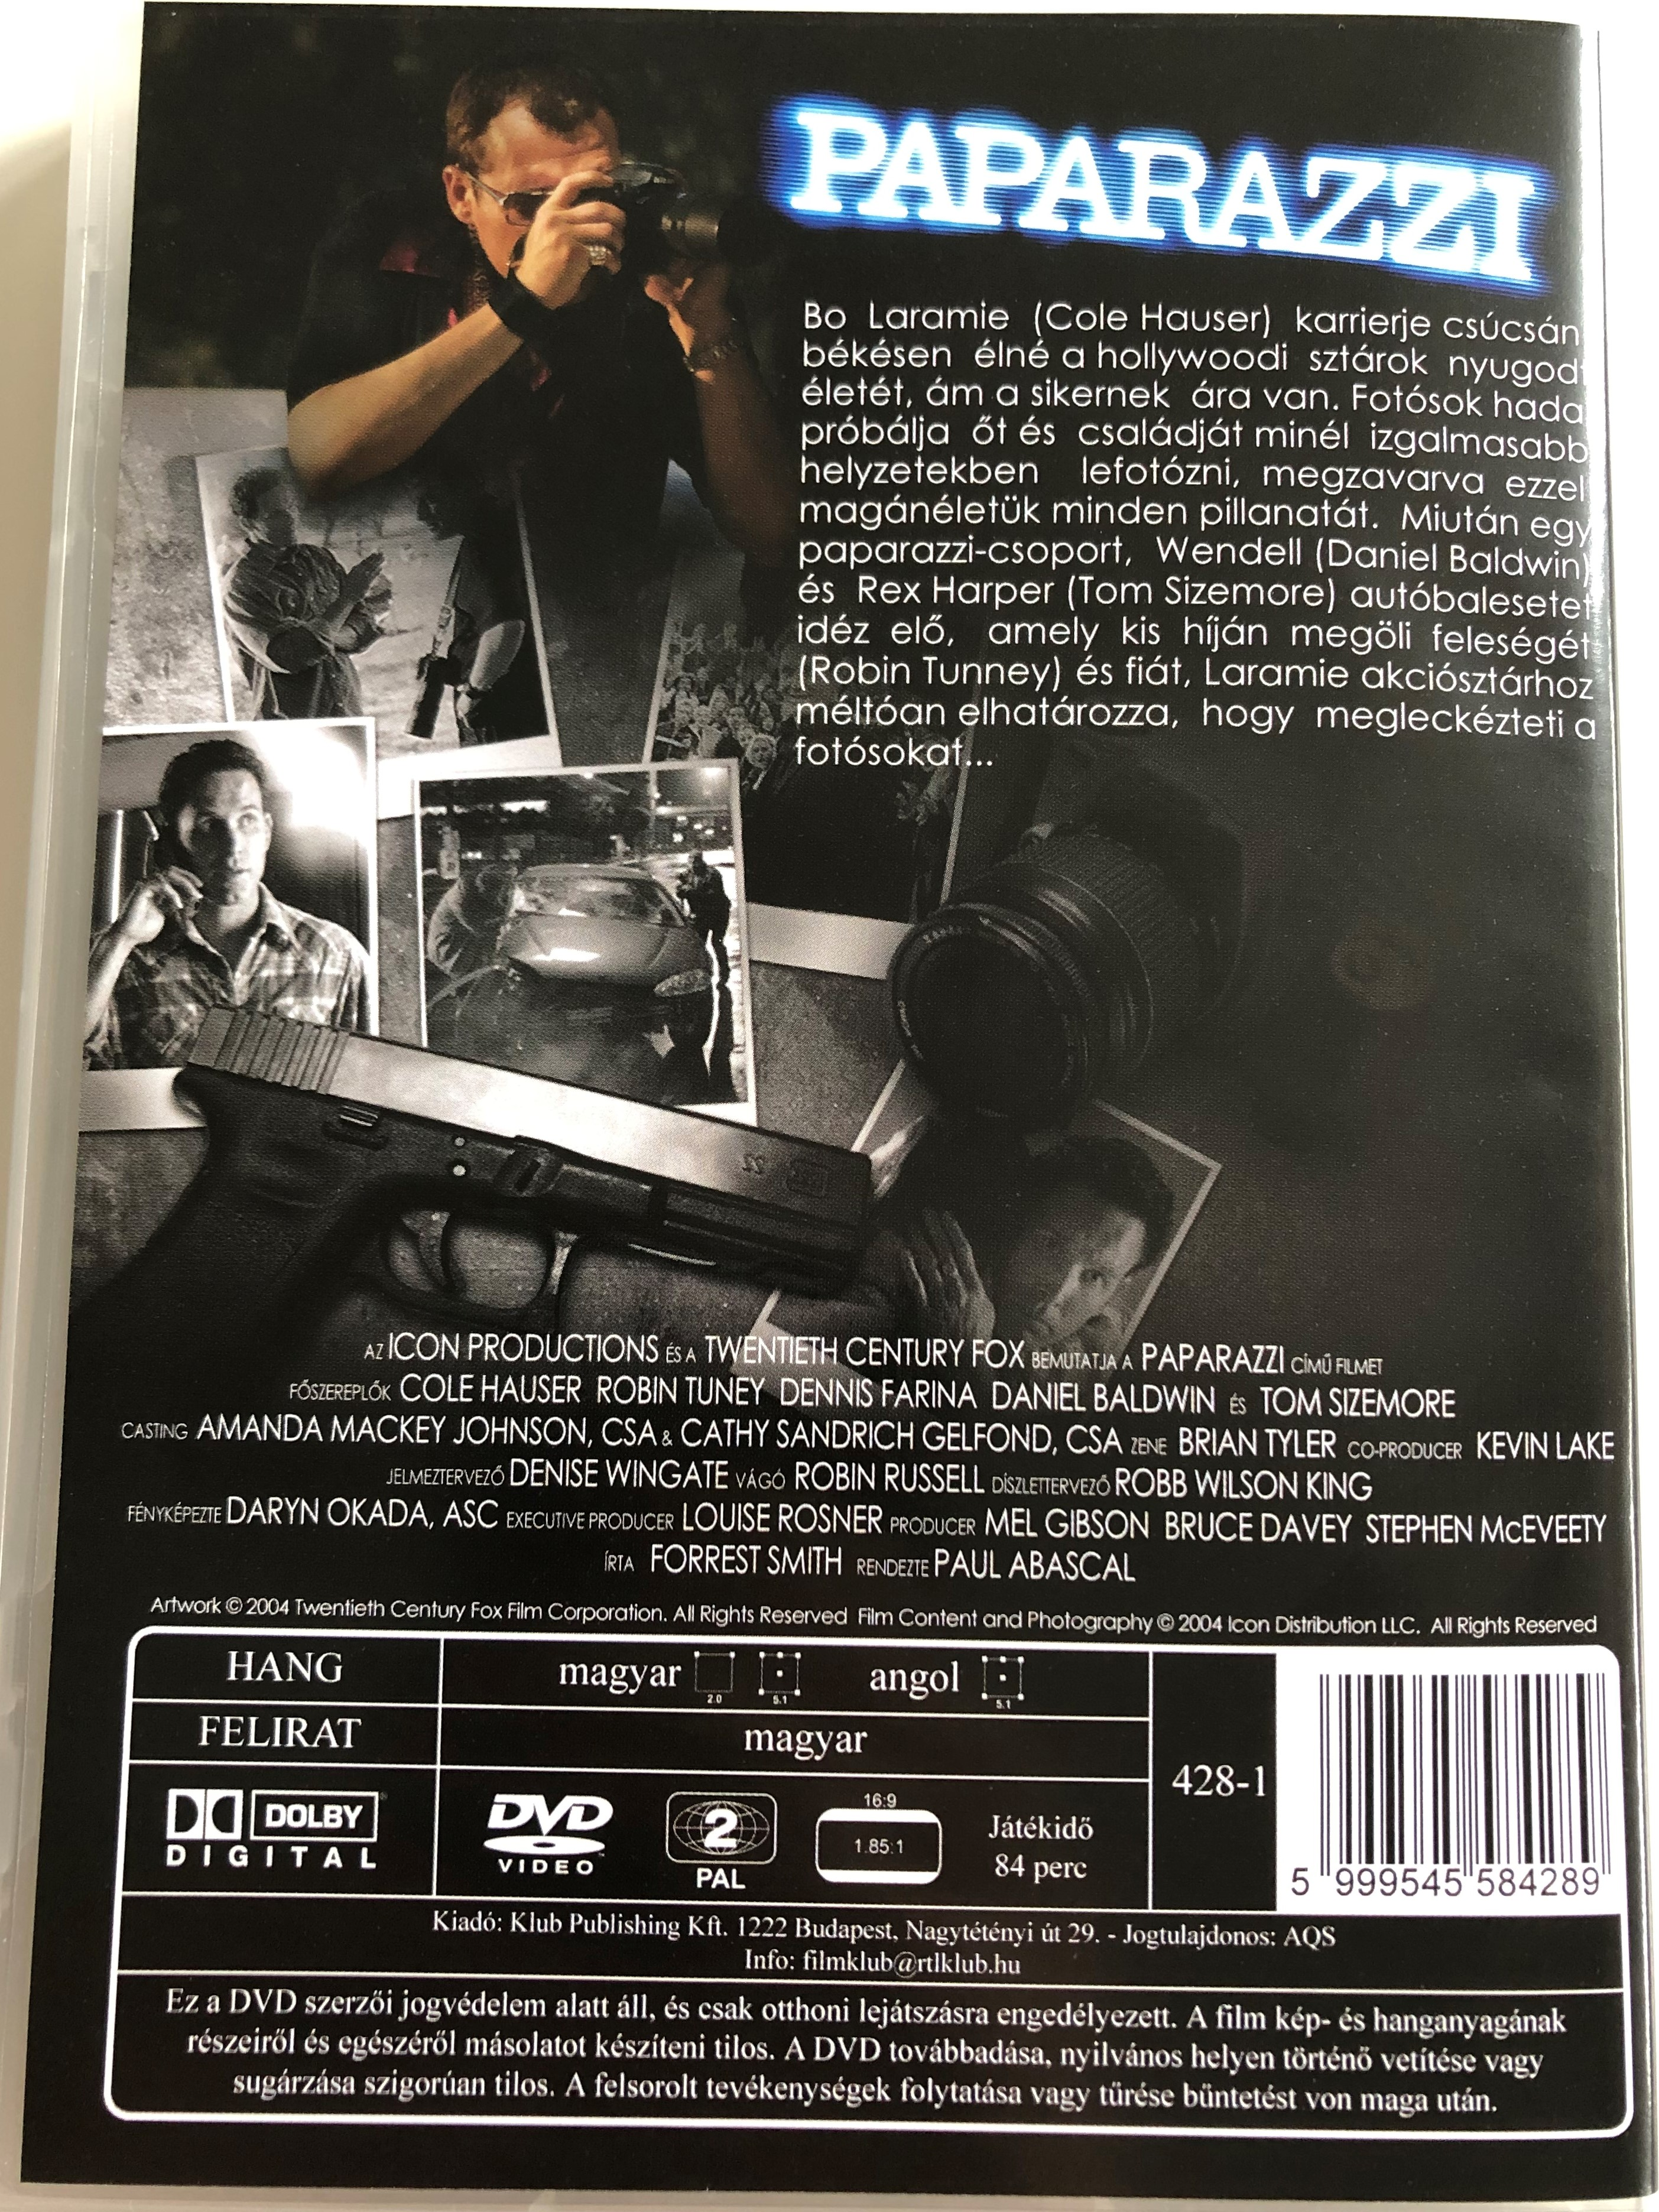 paparazzi-dvd-2004-directed-by-paul-abascal-starring-cole-hauser-robin-tunney-dennis-farina-daniel-baldwin-tom-sizemore-2-.jpg